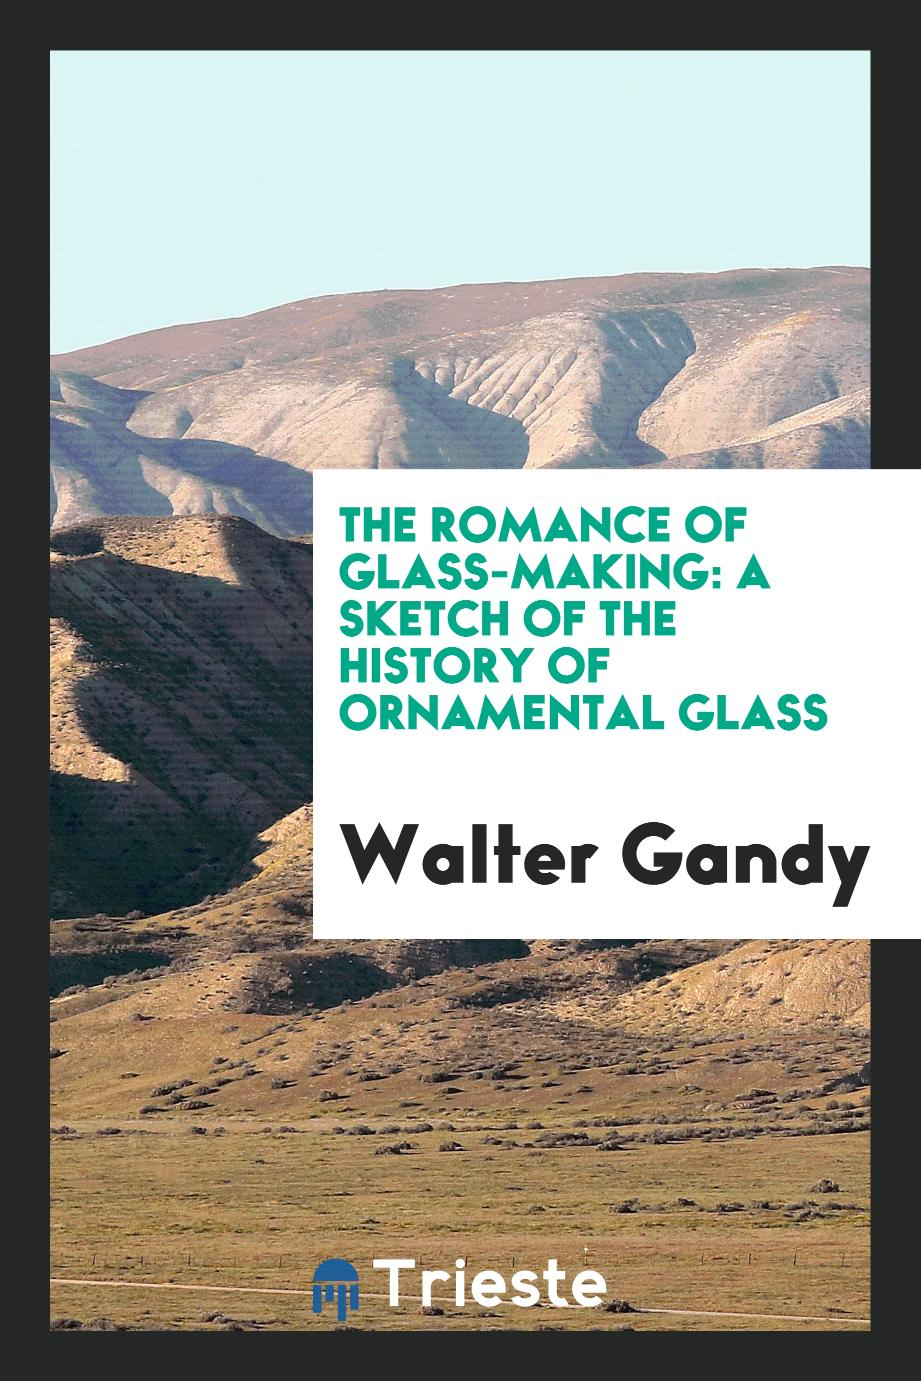 The Romance of Glass-Making: A Sketch of the History of Ornamental Glass